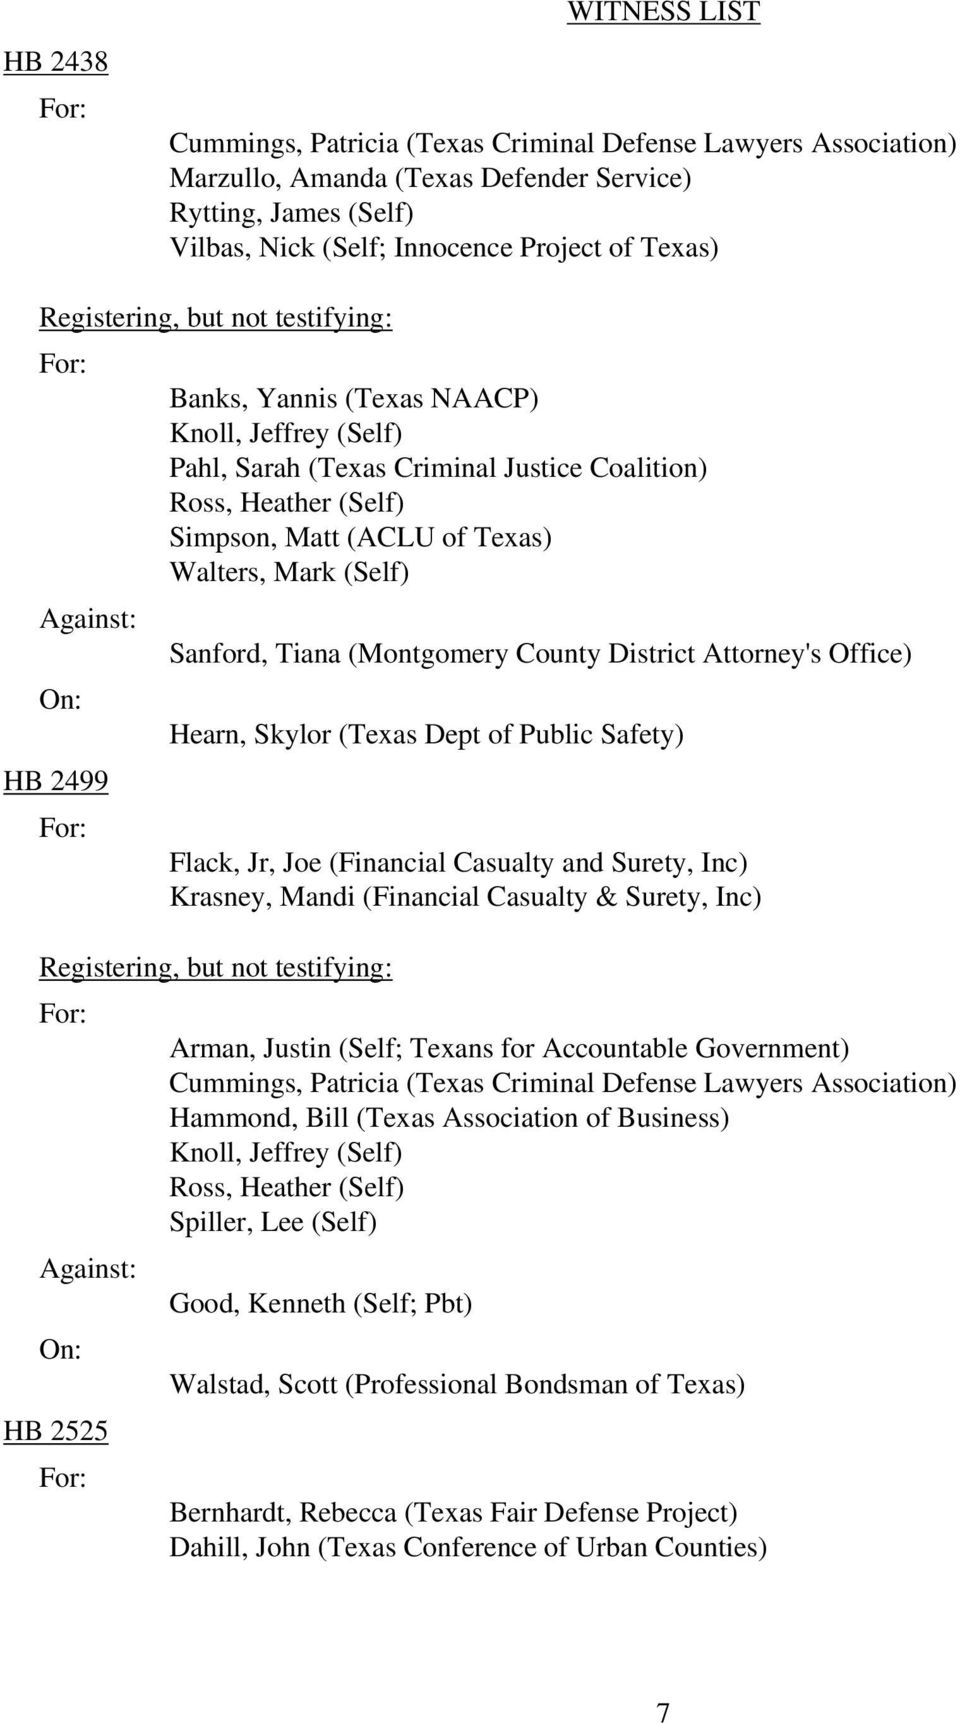 Krasney, Mandi (Financial Casualty & Surety, Inc) HB 2525 Arman, Justin (Self; Texans for Accountable Government) Hammond, Bill (Texas Association of Business) Ross, Heather (Self)